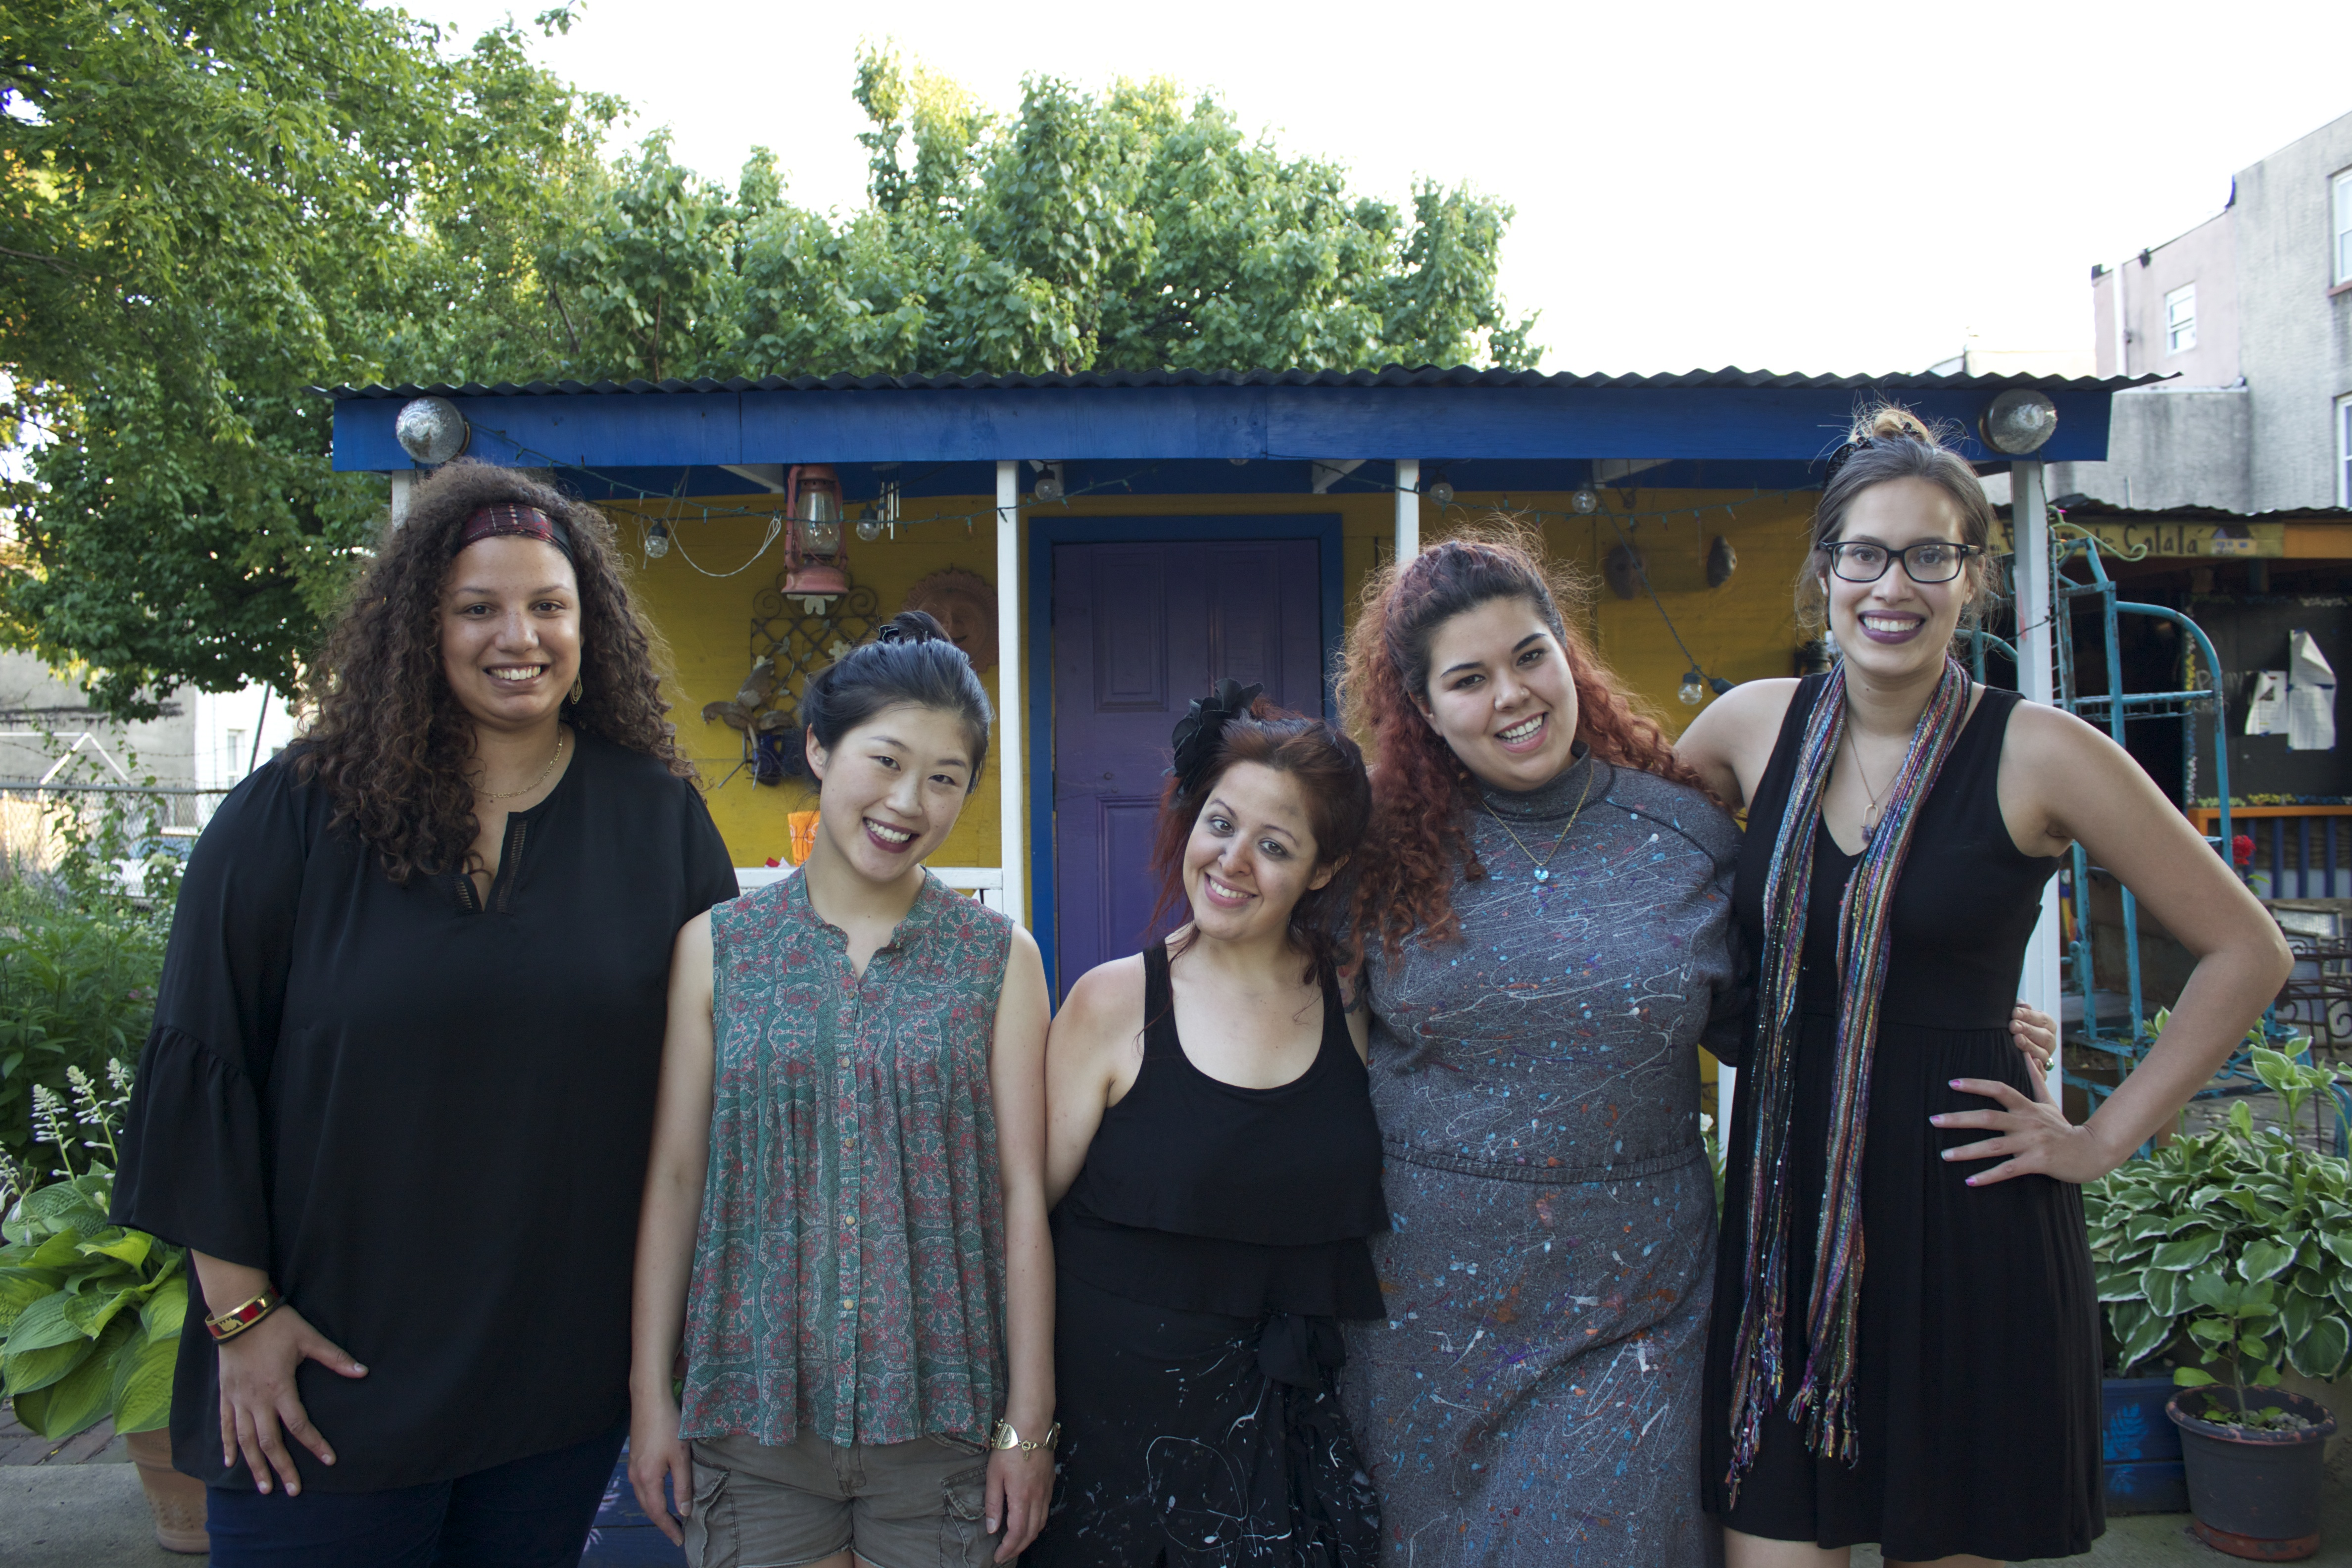 The staff at Power Street Theatre includes, from left to right: Lexi White, resident artist; Asaki Kuruma, production manager; Diana Rodriguez, resident artist; Gabriela Sanchez, founder and managing director; Erlina Ortiz, artistic director and resident playwright.